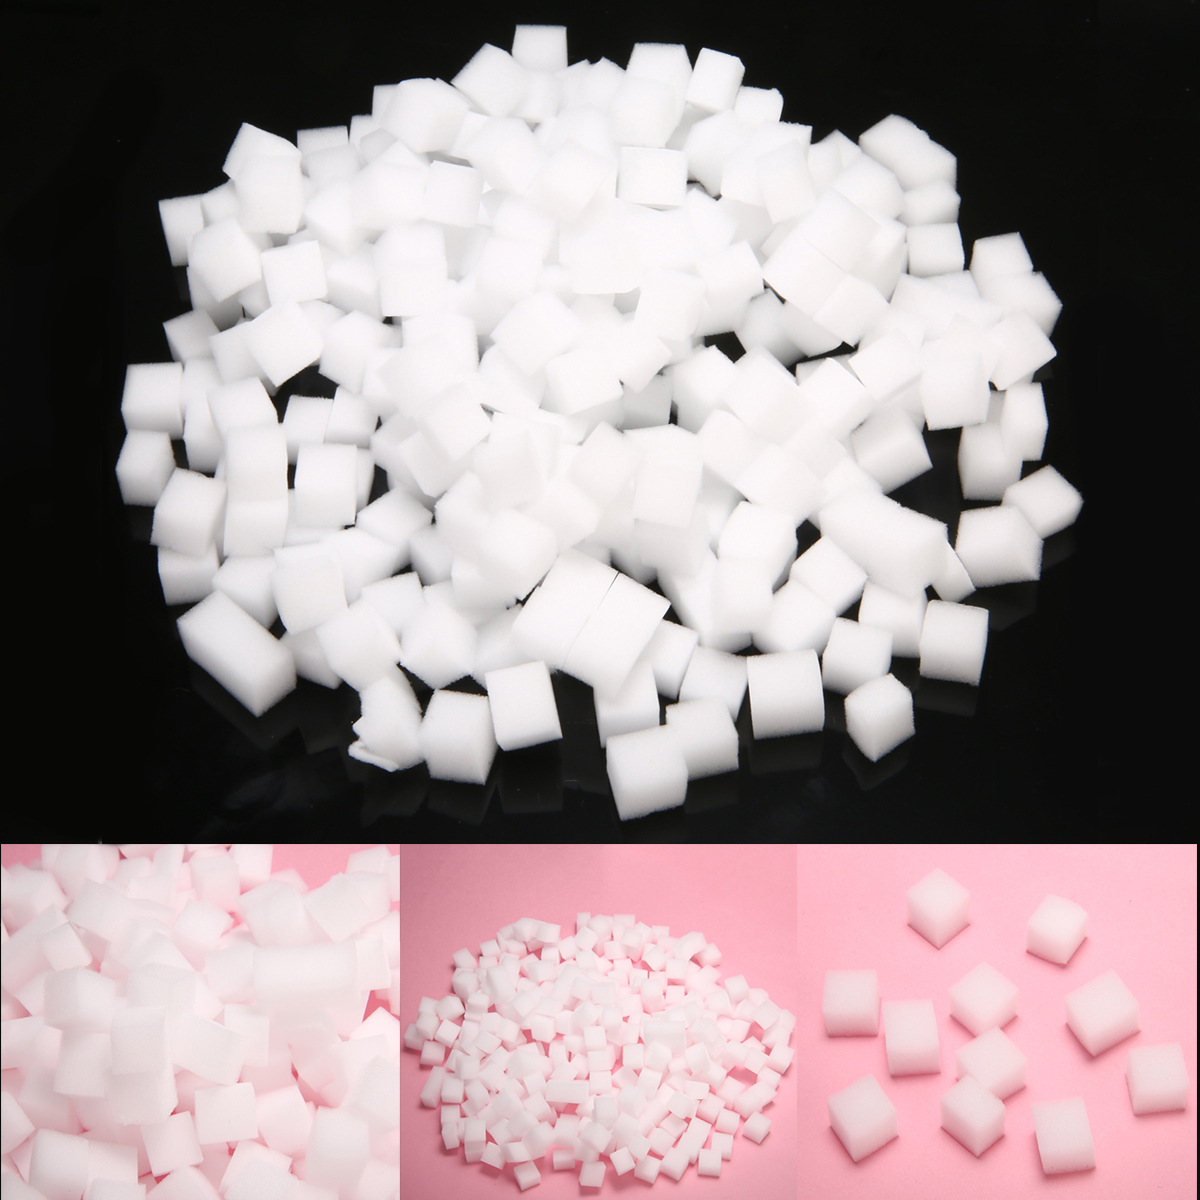 300pcs New 10*10mm Simulation Jelly Cubes Toy Girl Crafts DIY Toy Material For Slime / Jelly Cube Clear Slime Crafts Decoration